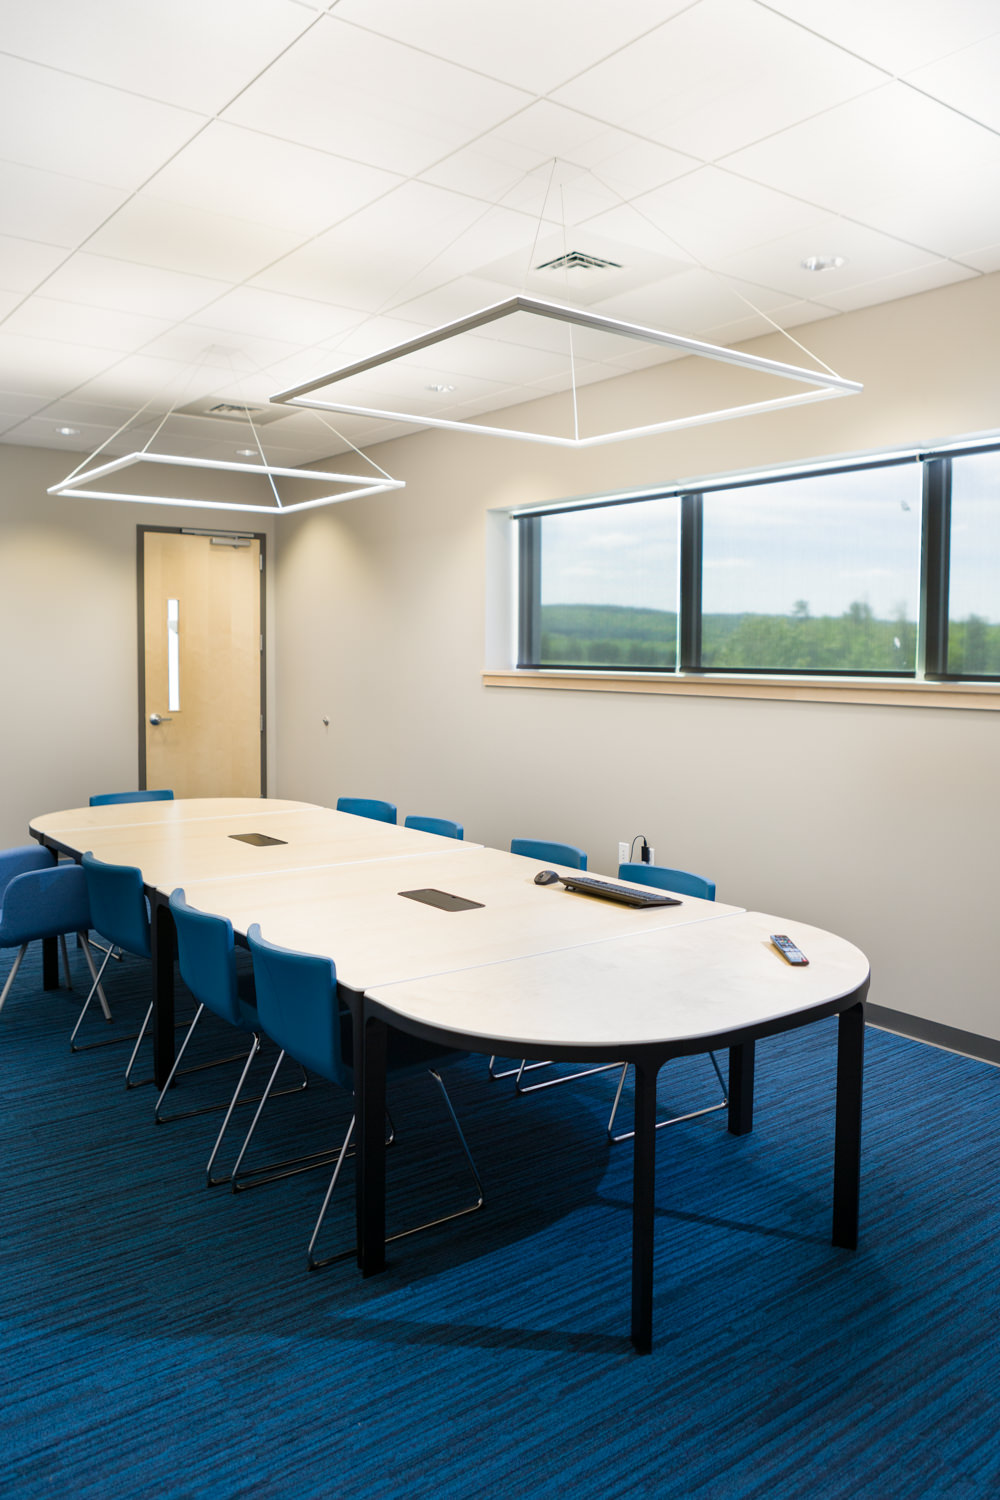 Blue conference room in Logic Supply building addition for Neagley & Chase Construction Company by Vermont architecture photographer Stina Booth of Studio SB.